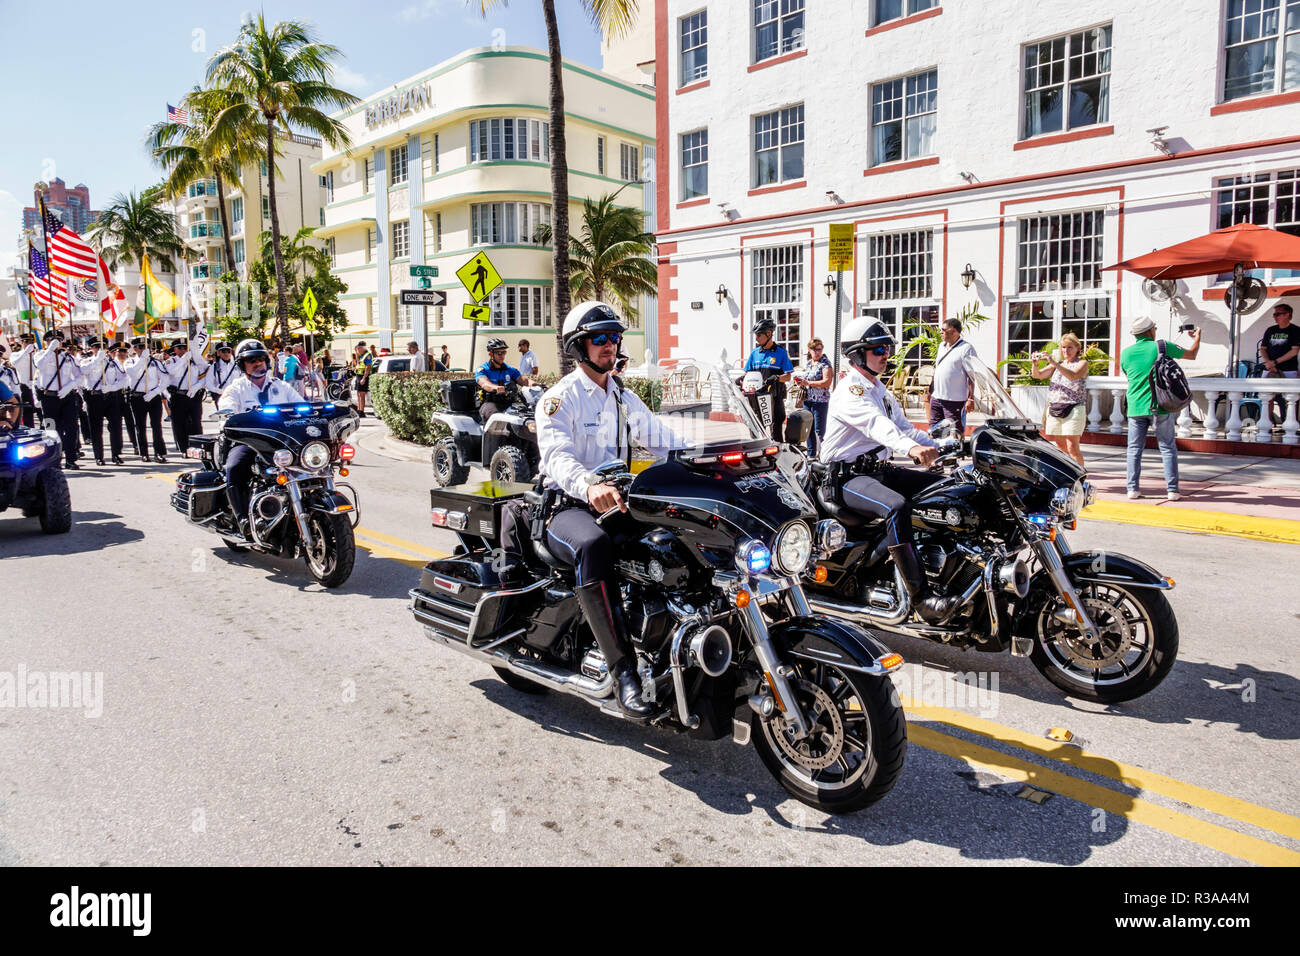 Miami Beach Florida Ocean Drive Veterans Day Parade activities Police Department motorcycle brigade motorcycles formation patrol - Stock Image